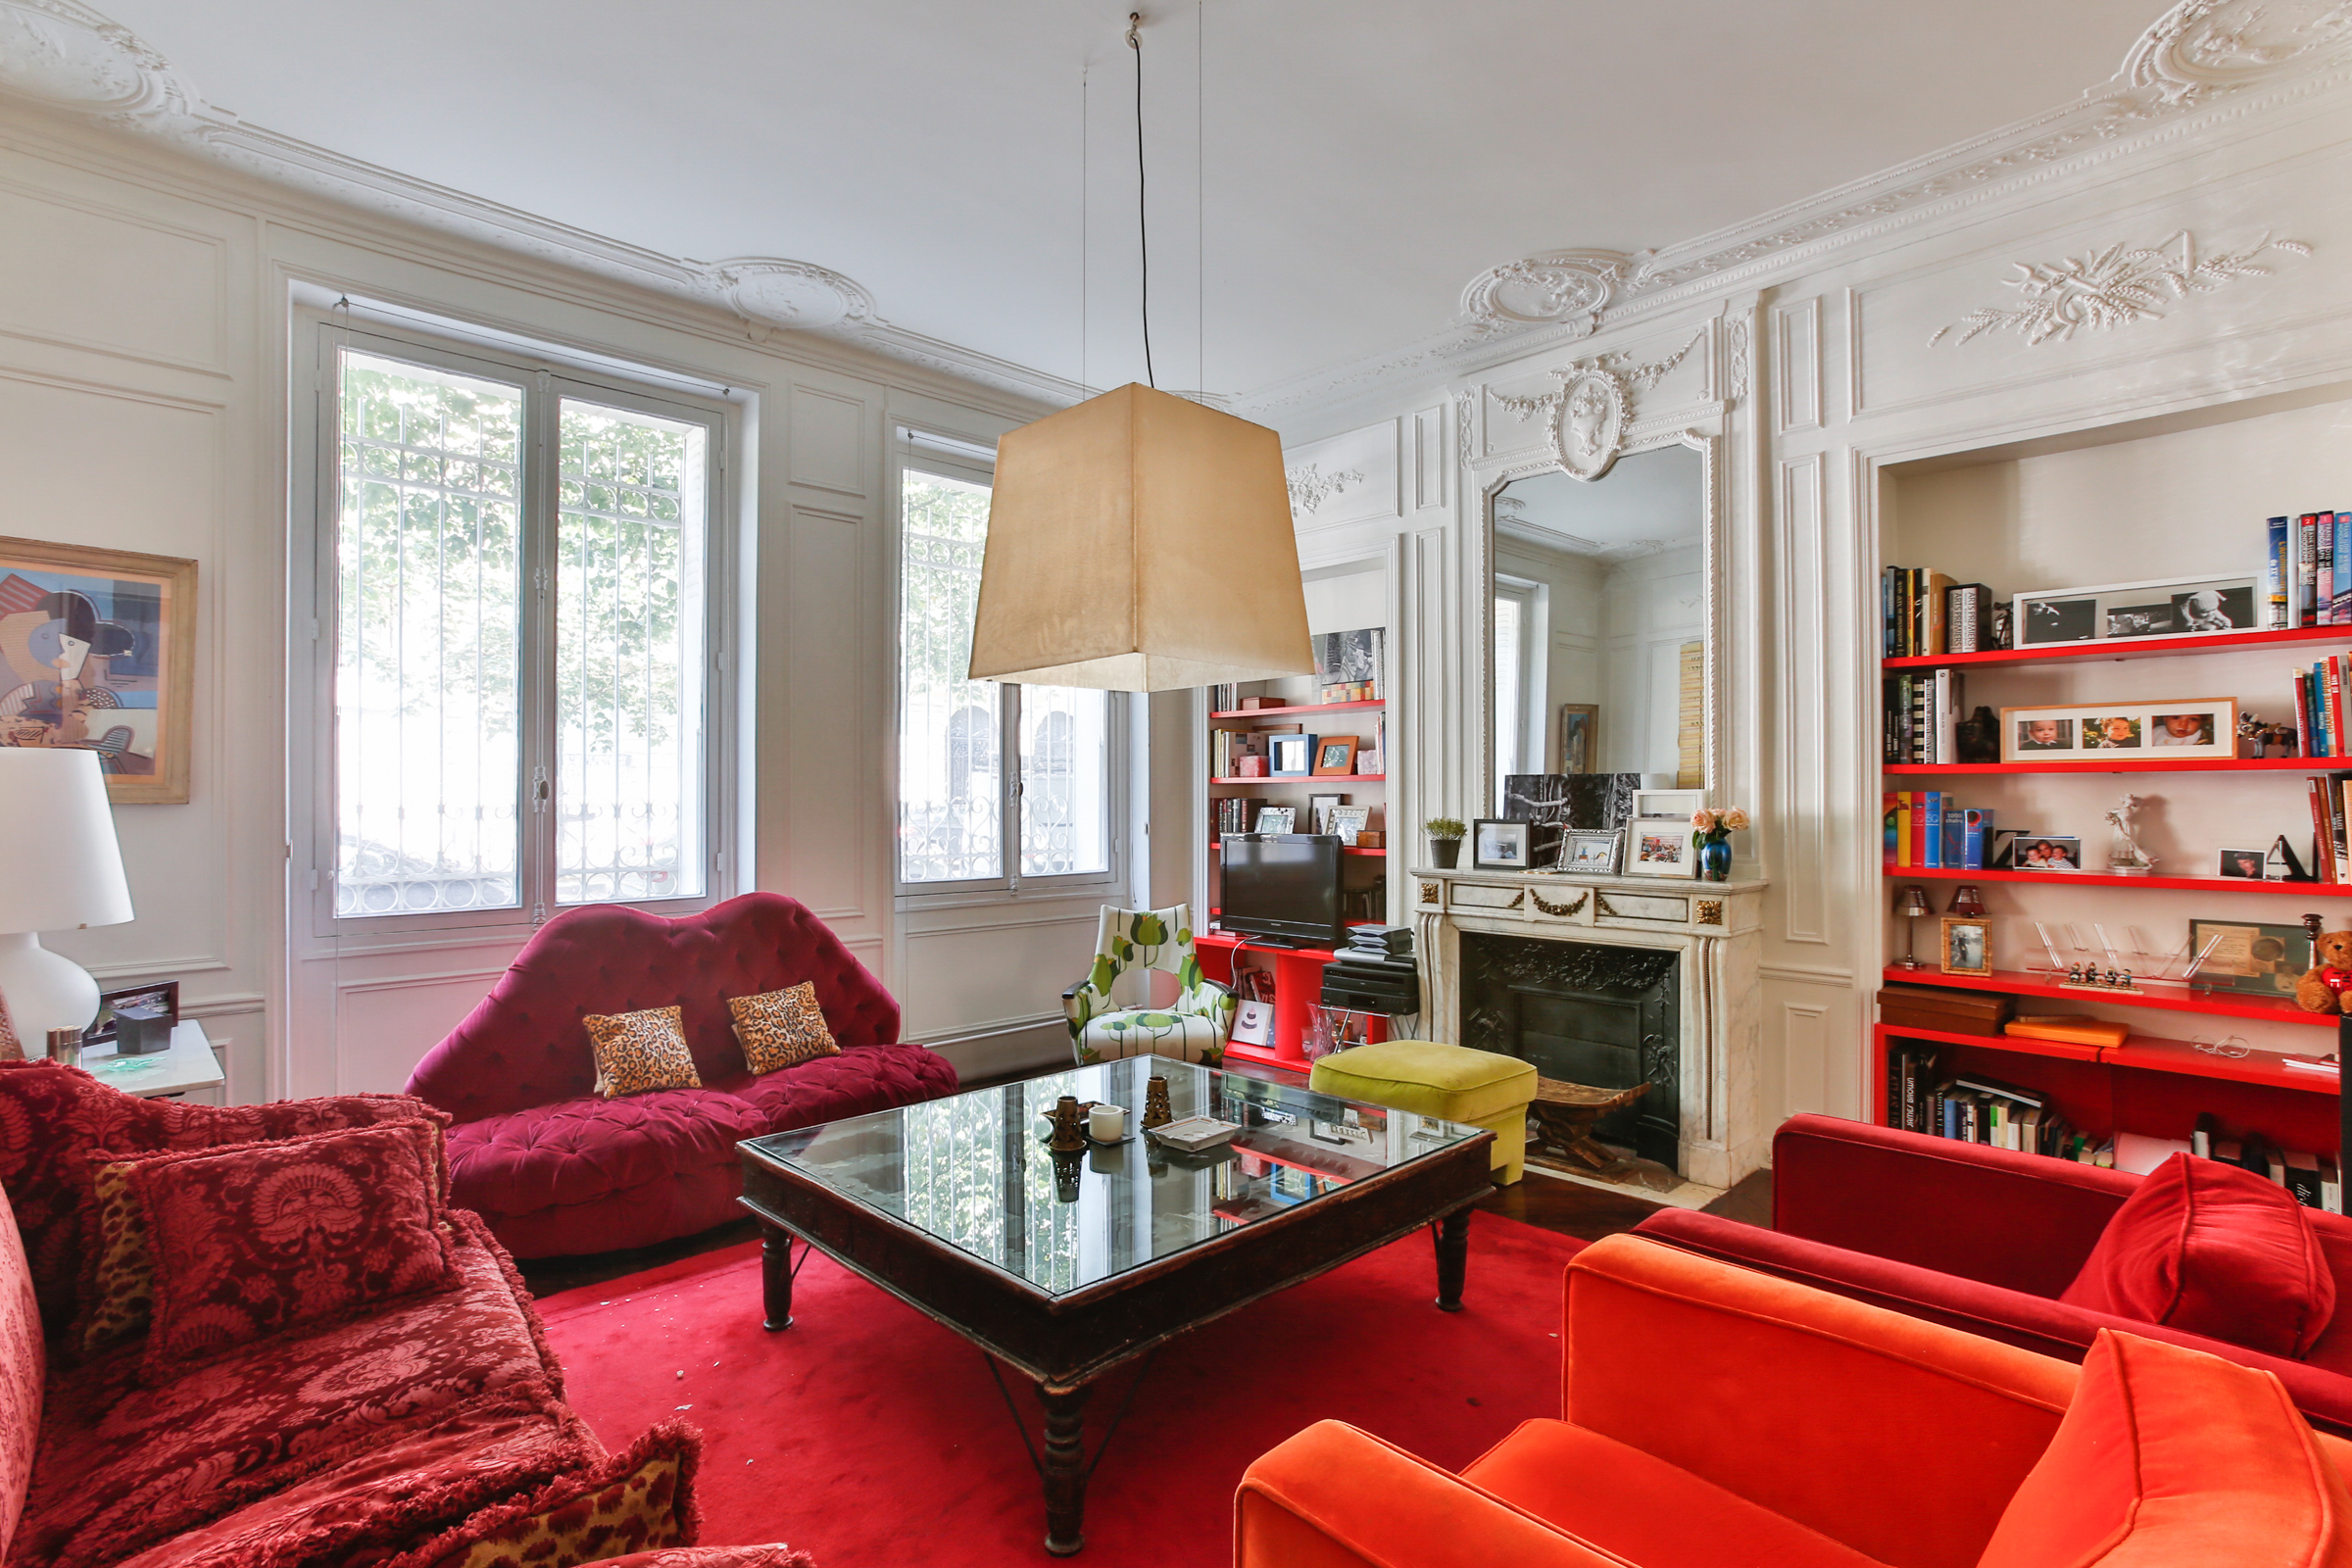 Property For Sale at Apartment - Eiffel Tower